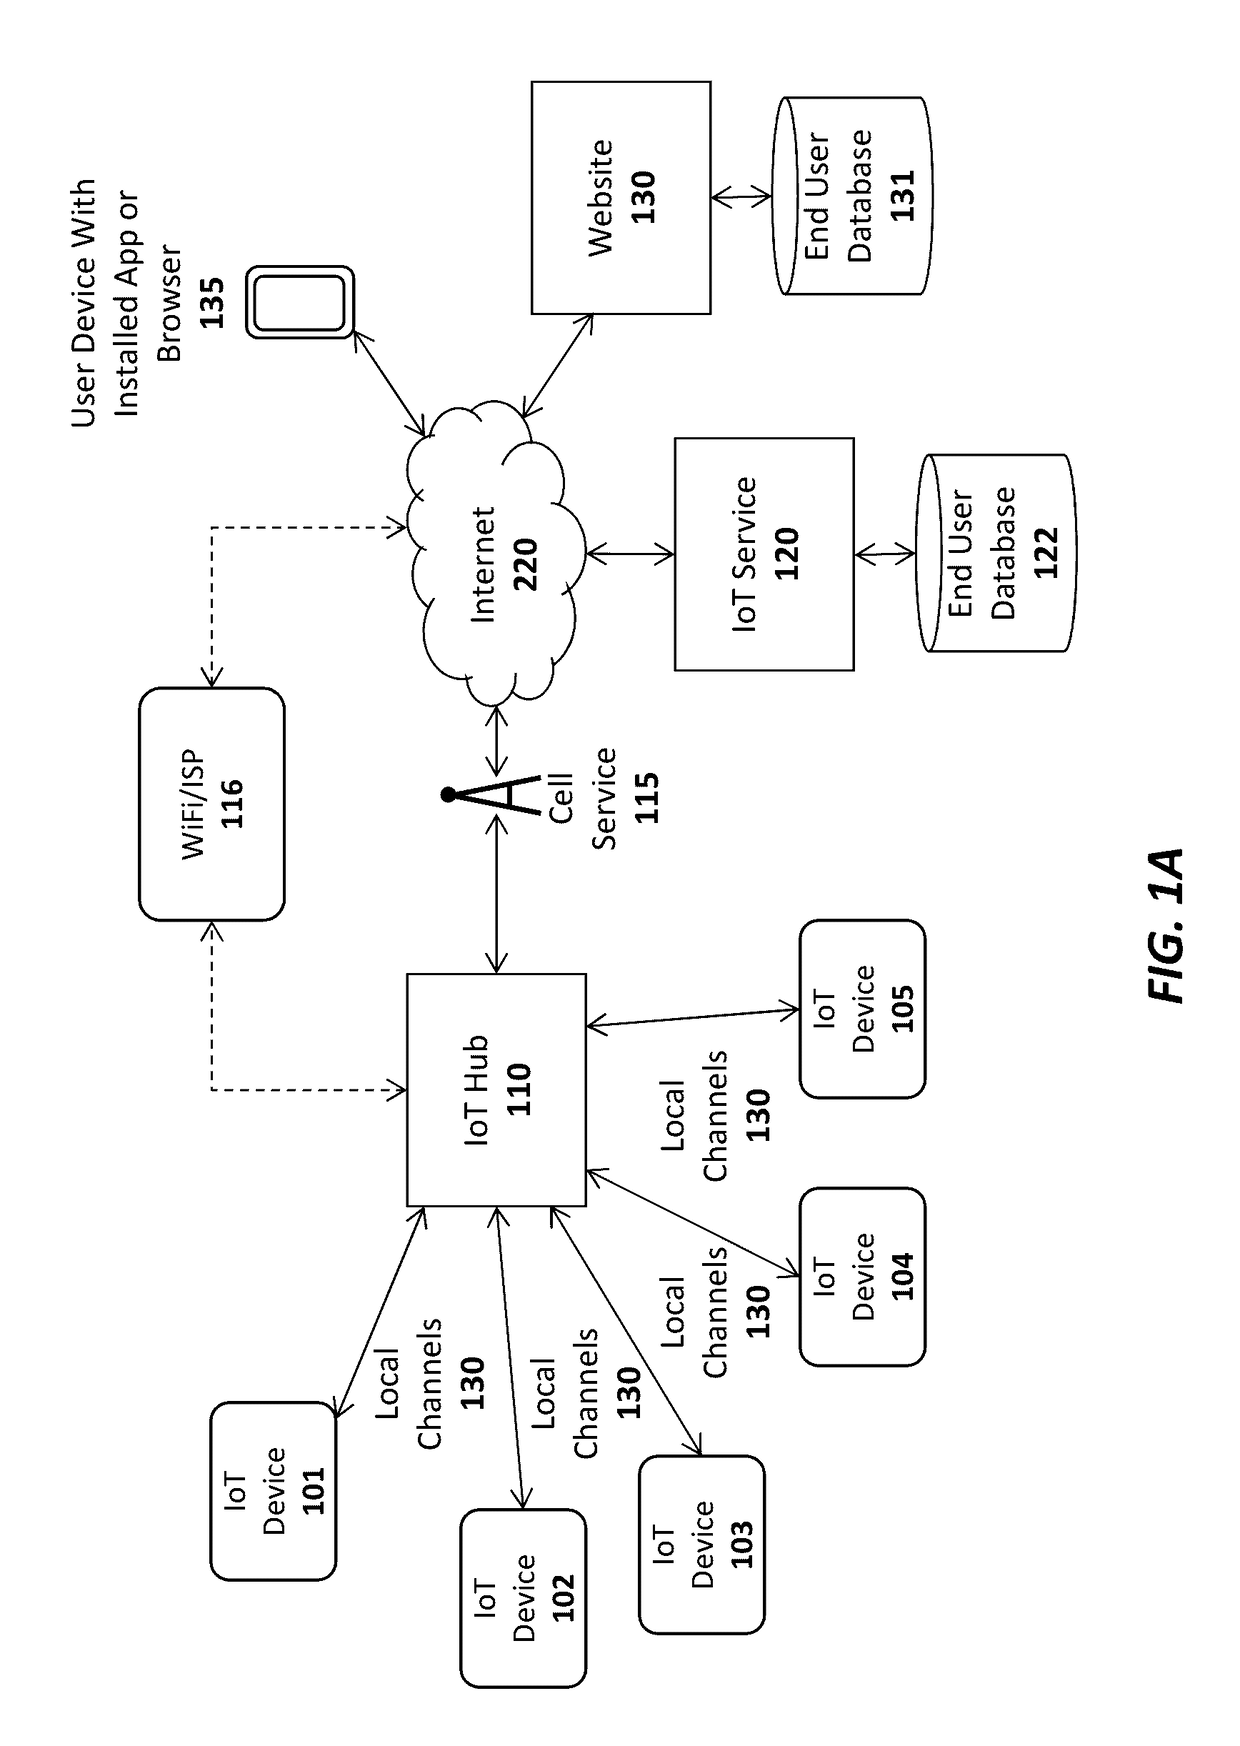 Patent Report: | US20170171180A1 | System Sharing Internet